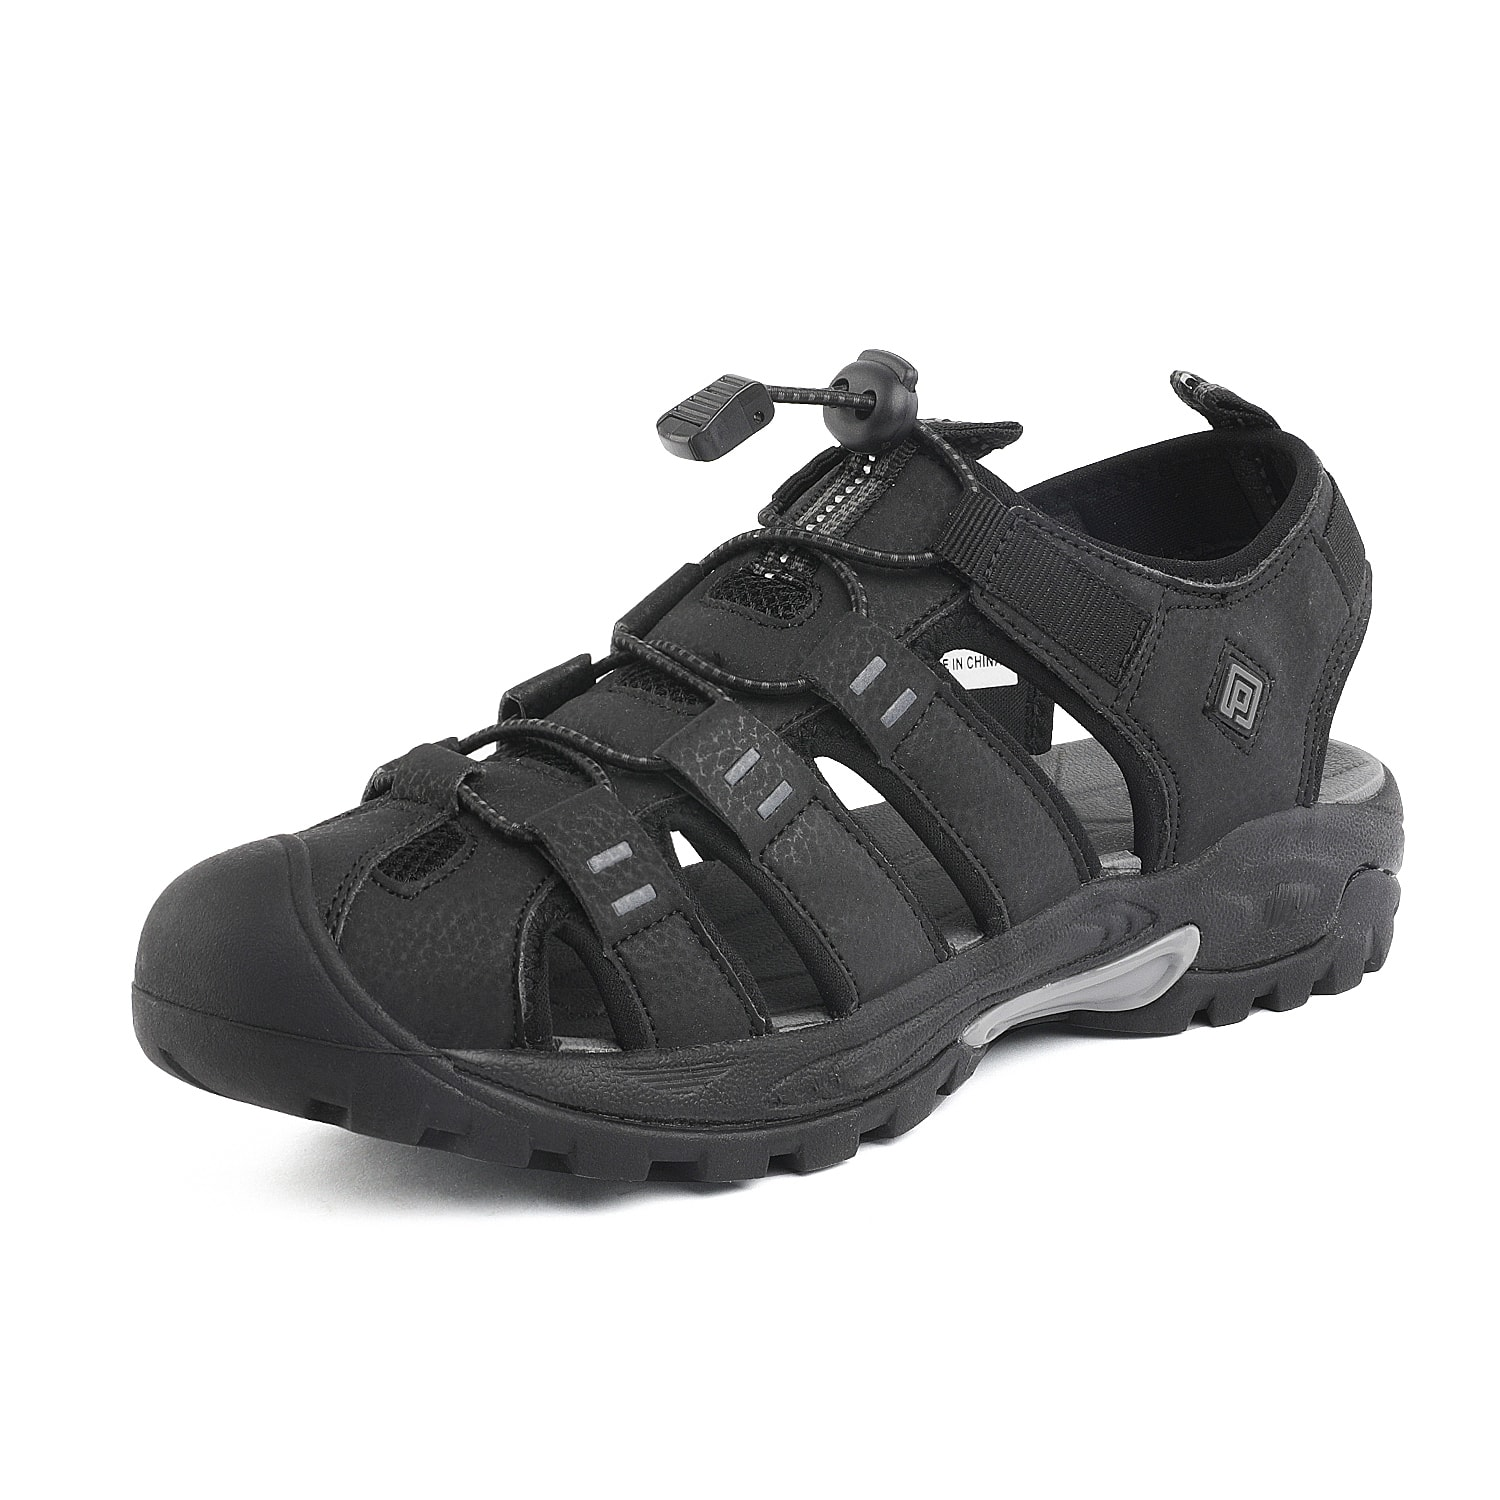 DREAM PAIRS Men's Outdoor Sandals - $9 + Free Shipping